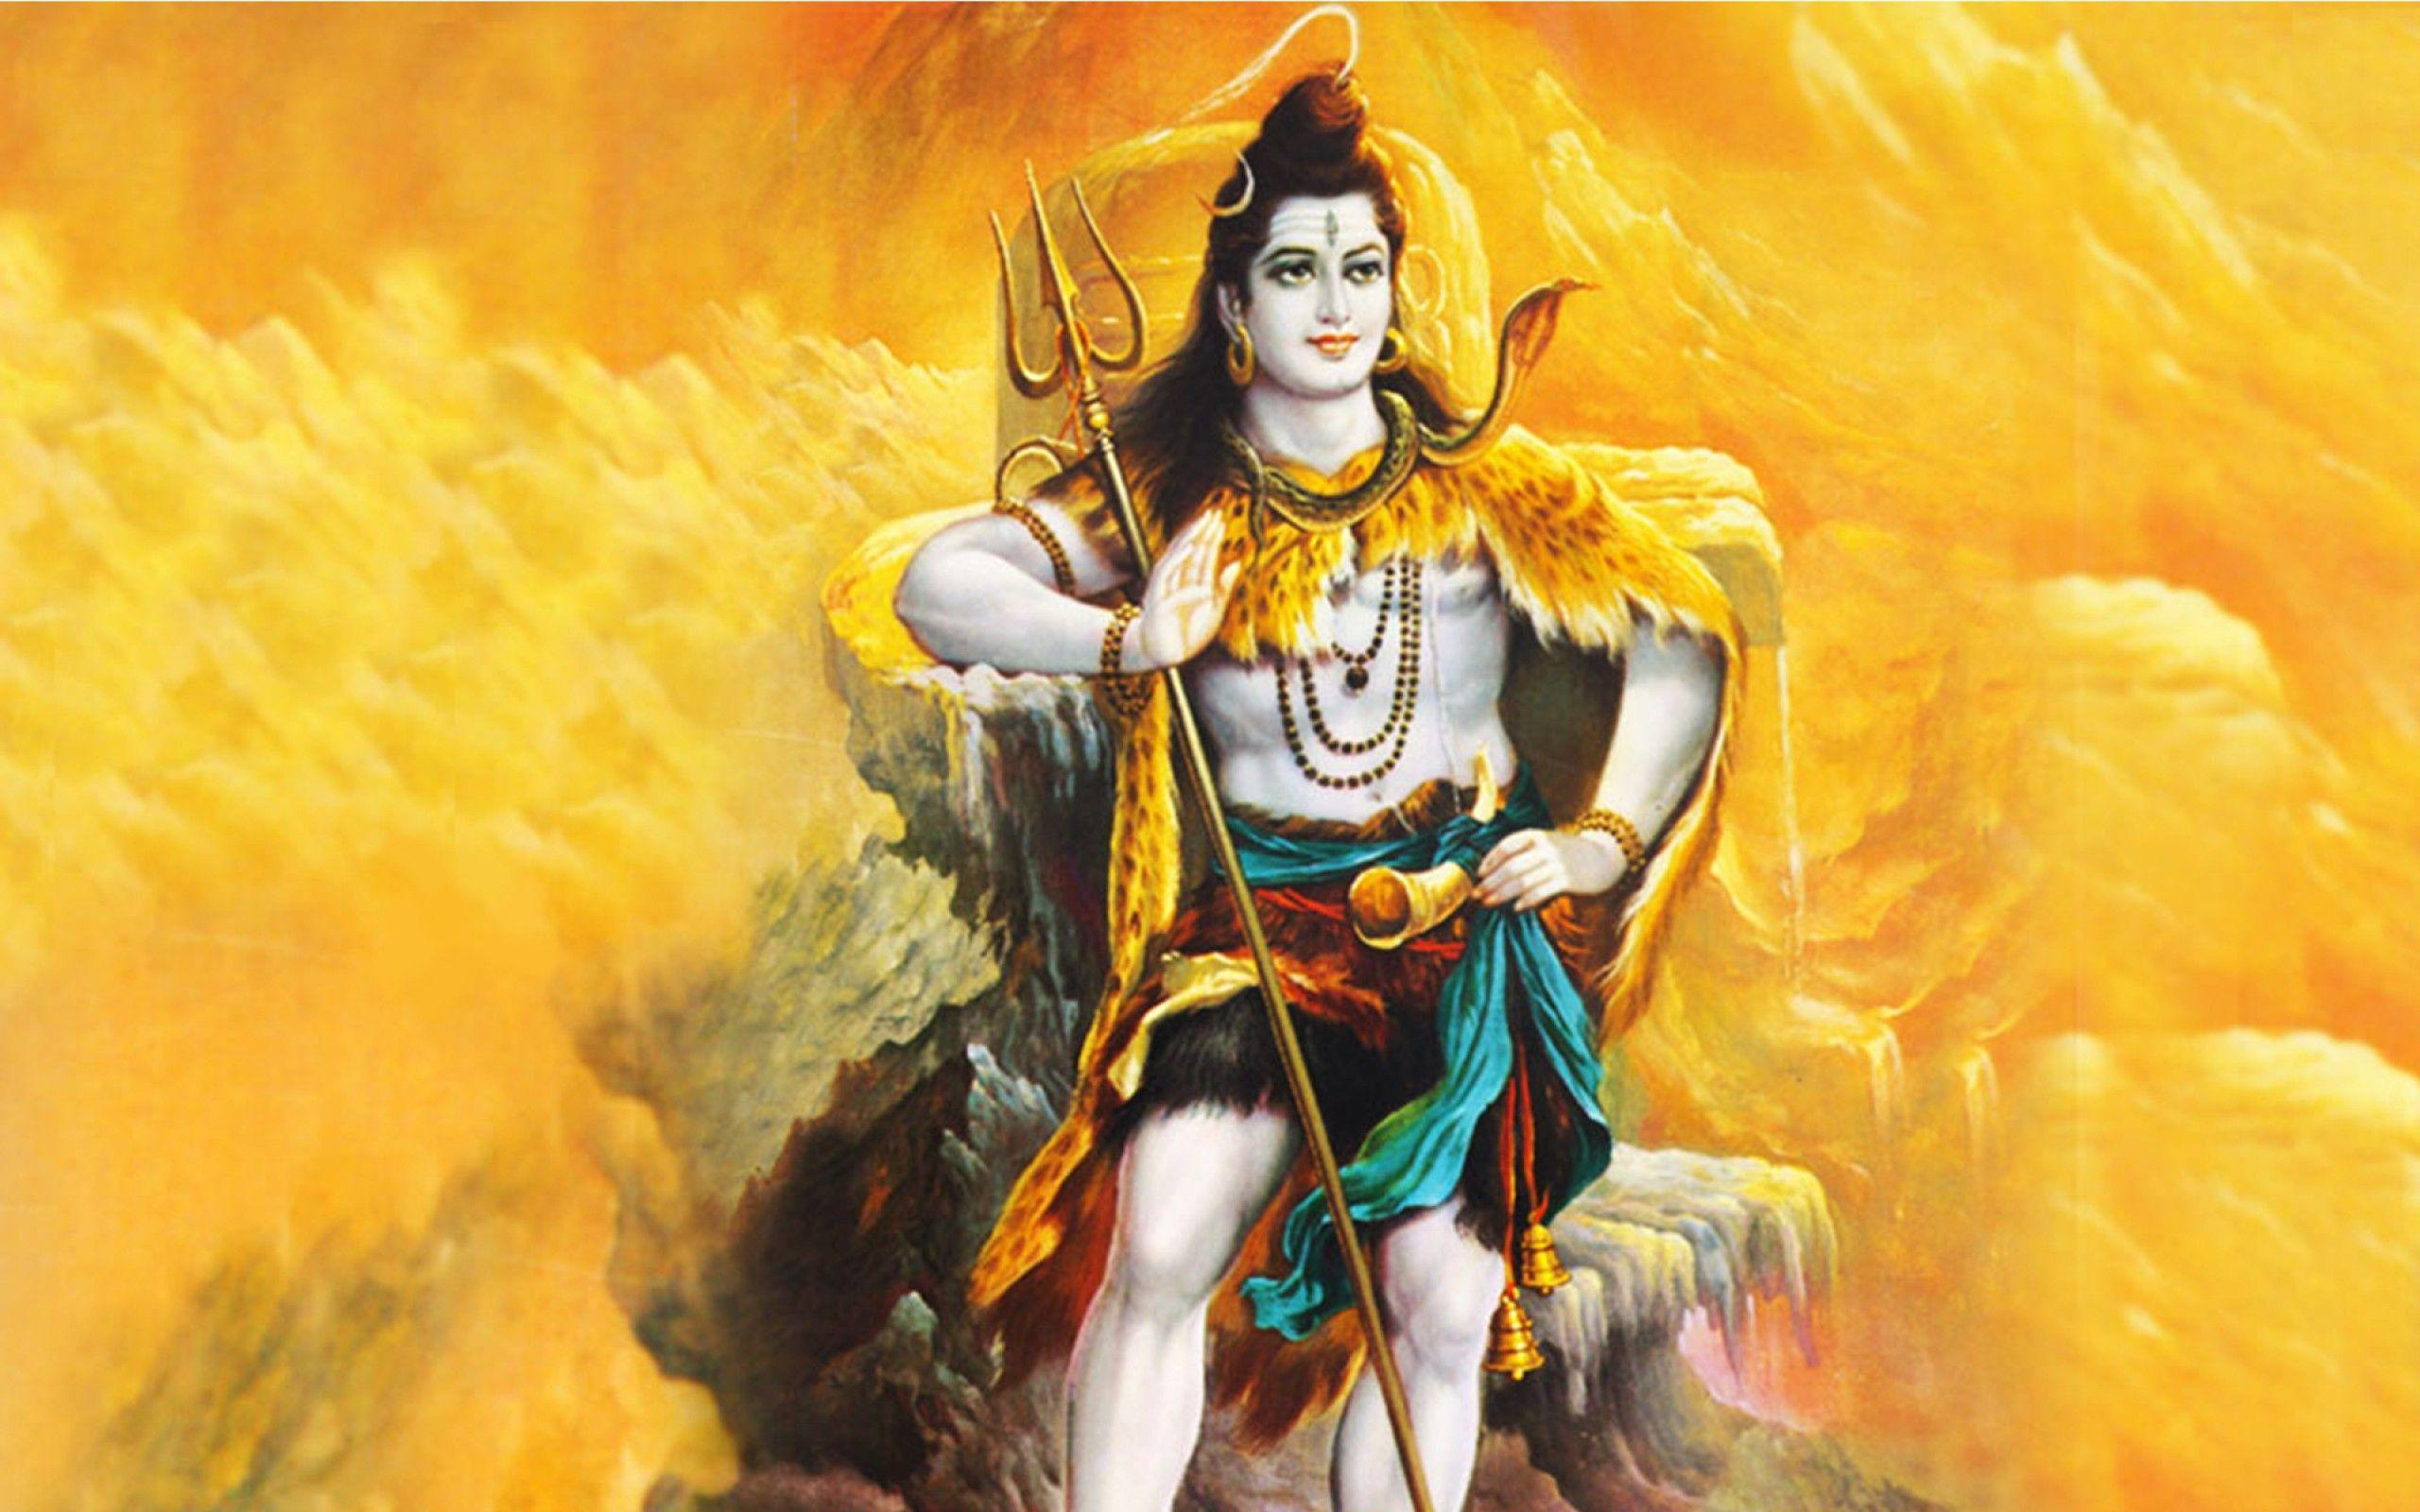 Lord Shiva Full Hd 1080p Photo: Lord Shiva Wallpapers